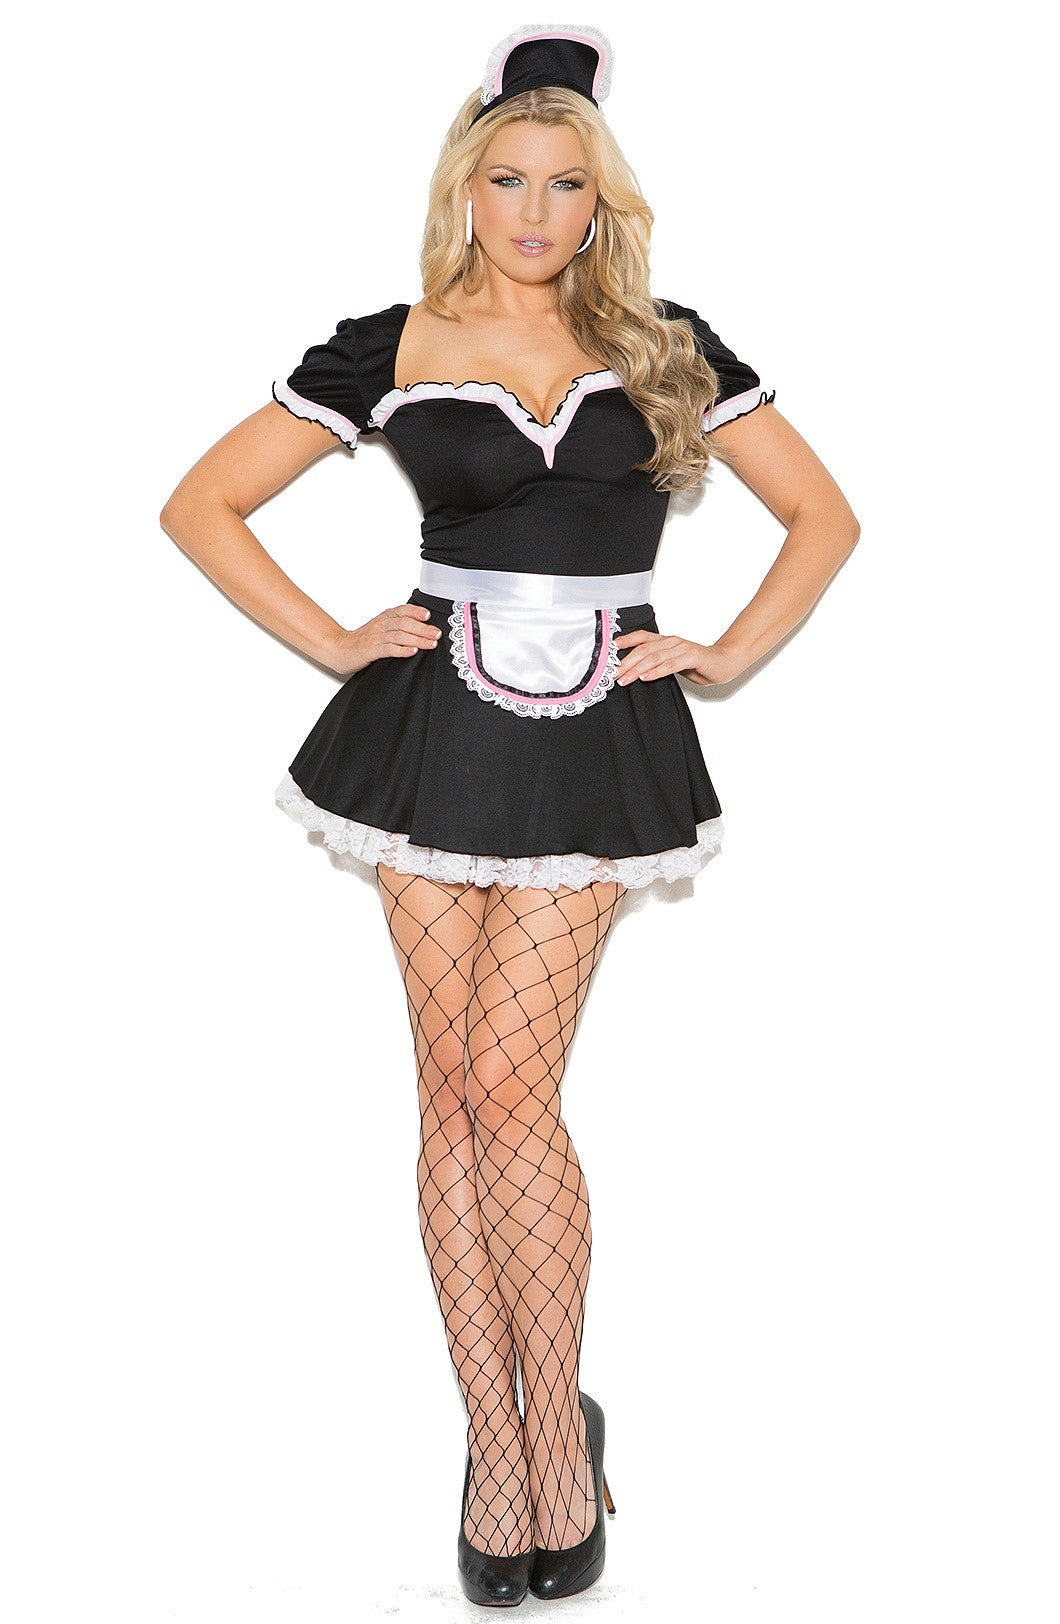 EM-9132 Maid to please - costume - Sexylingerieland  - 3